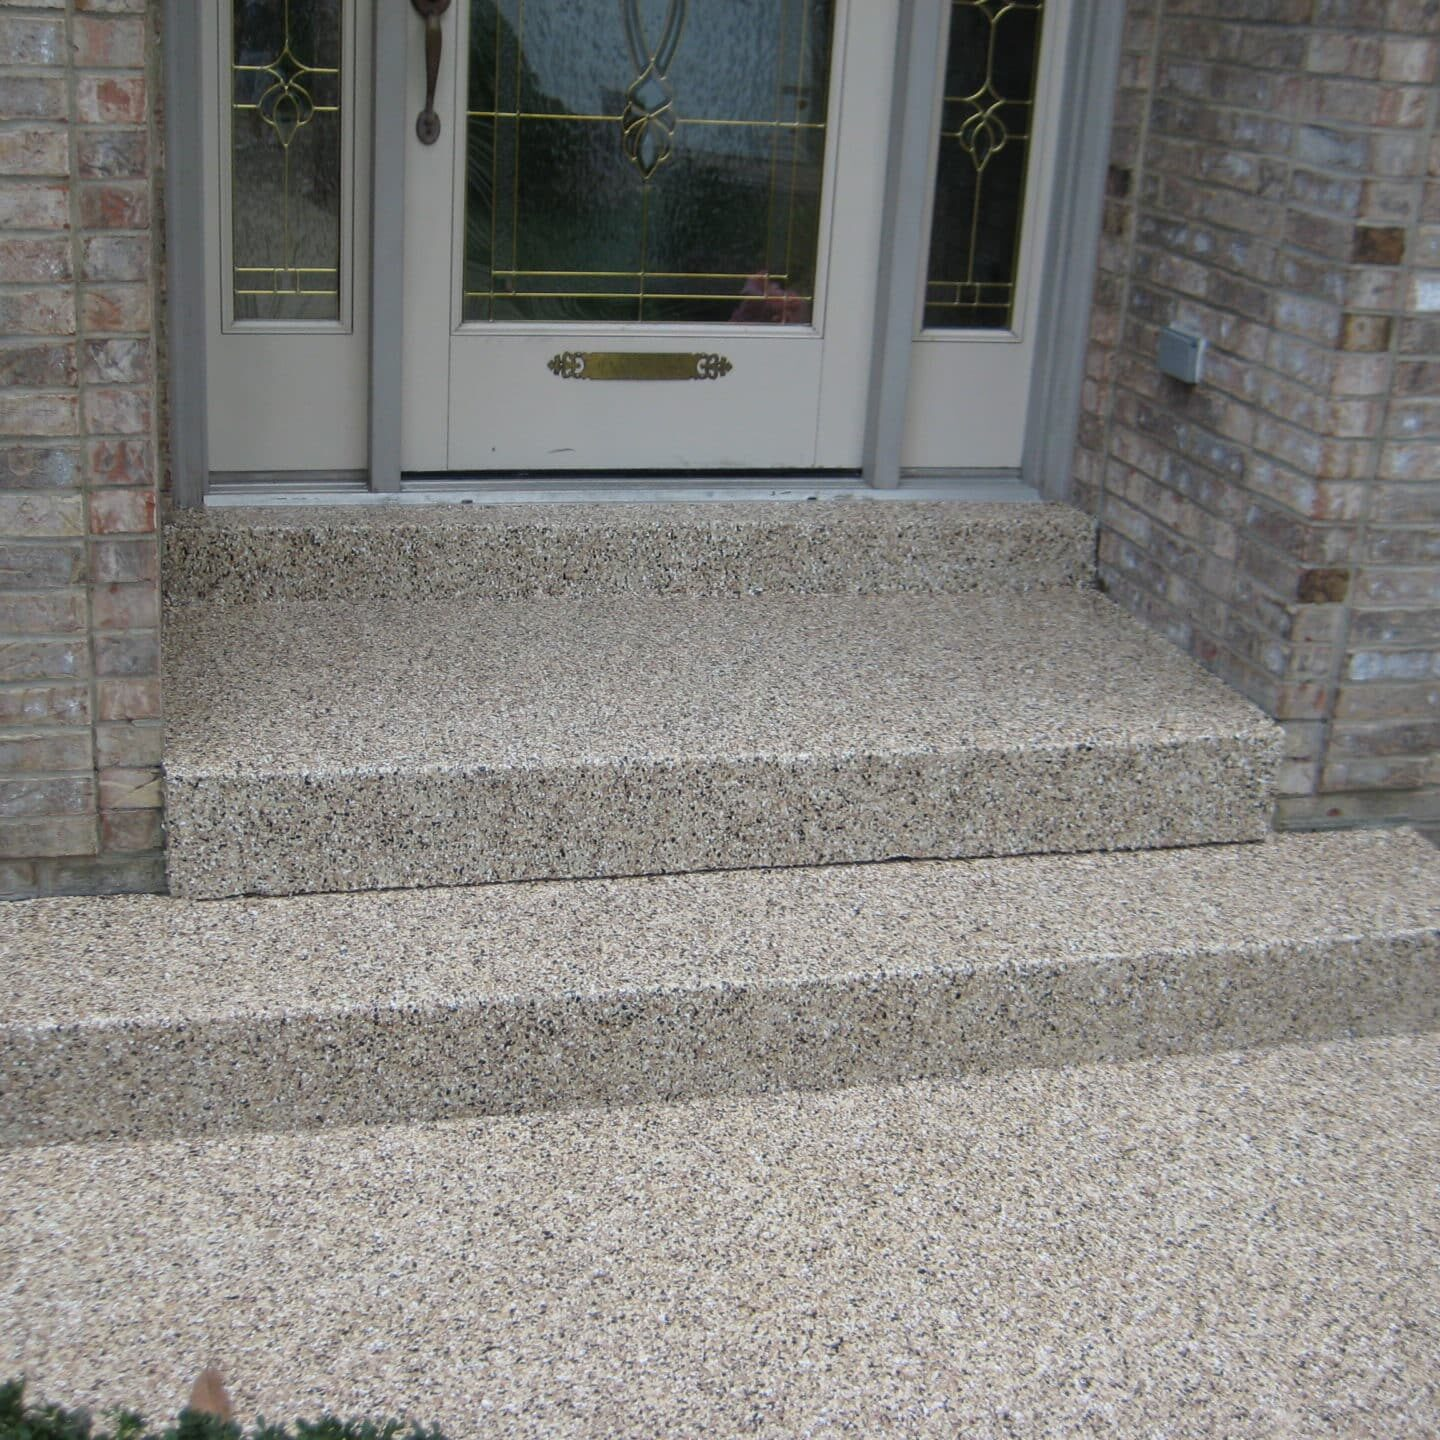 front walkway path done with floor shield coating